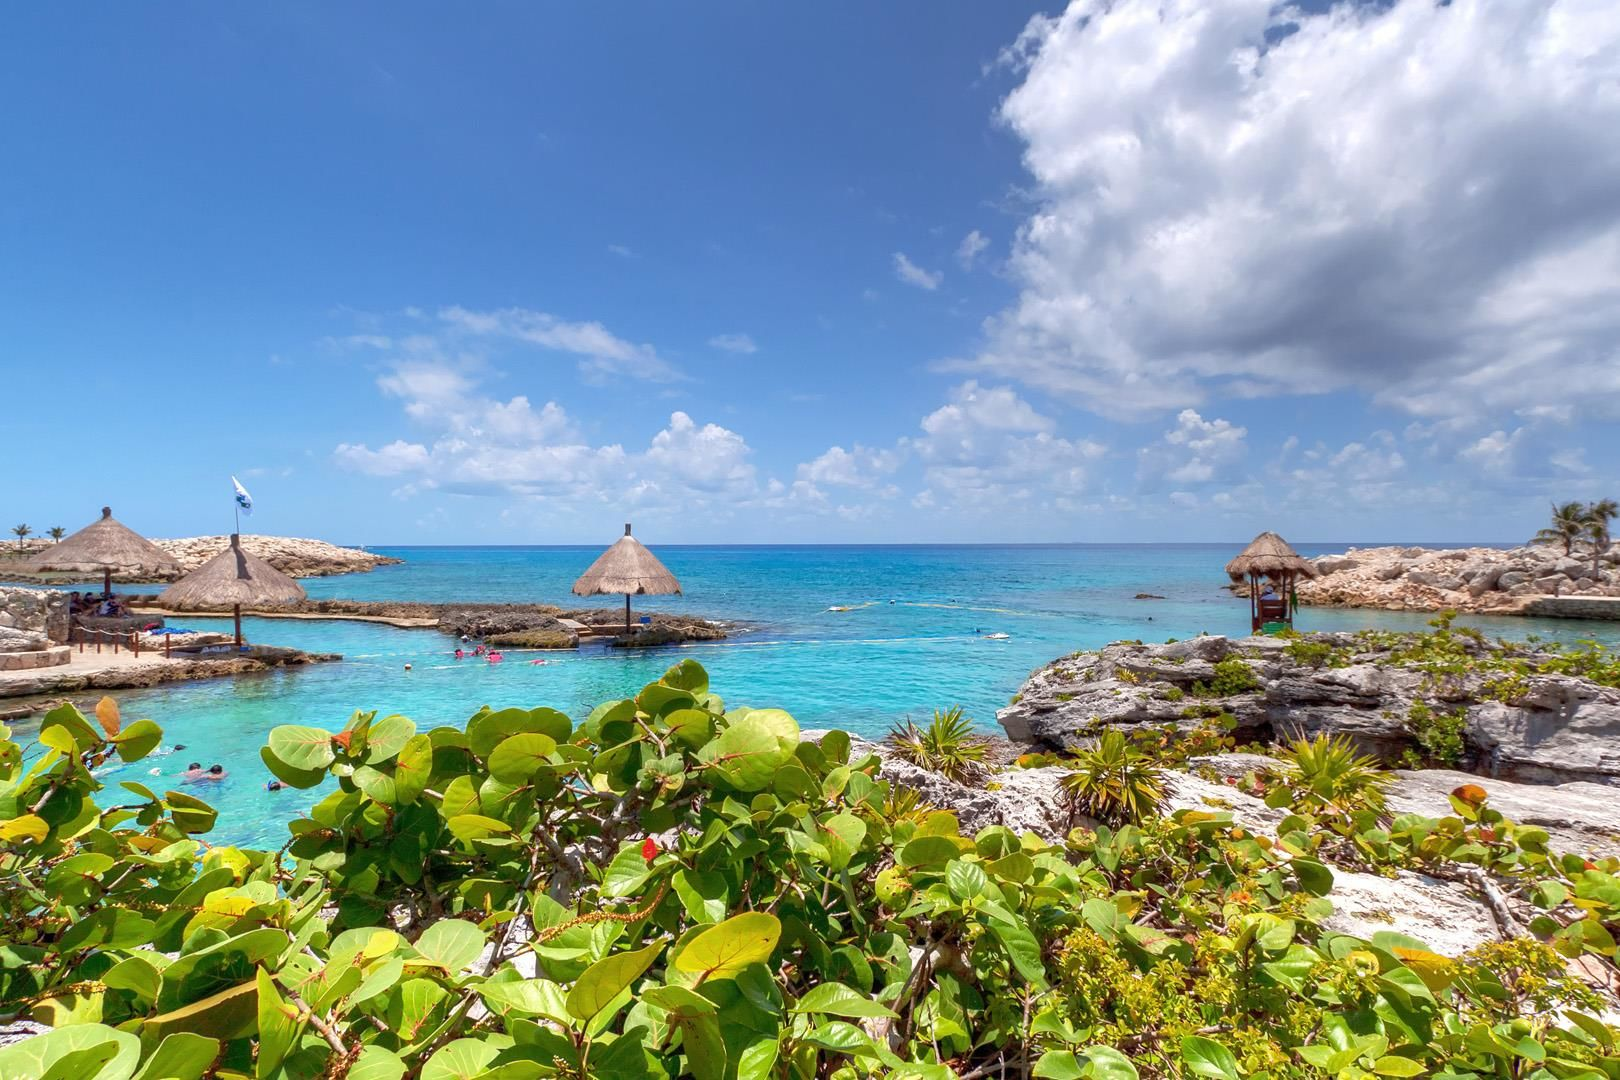 Vacations in Riviera Maya, Mexico